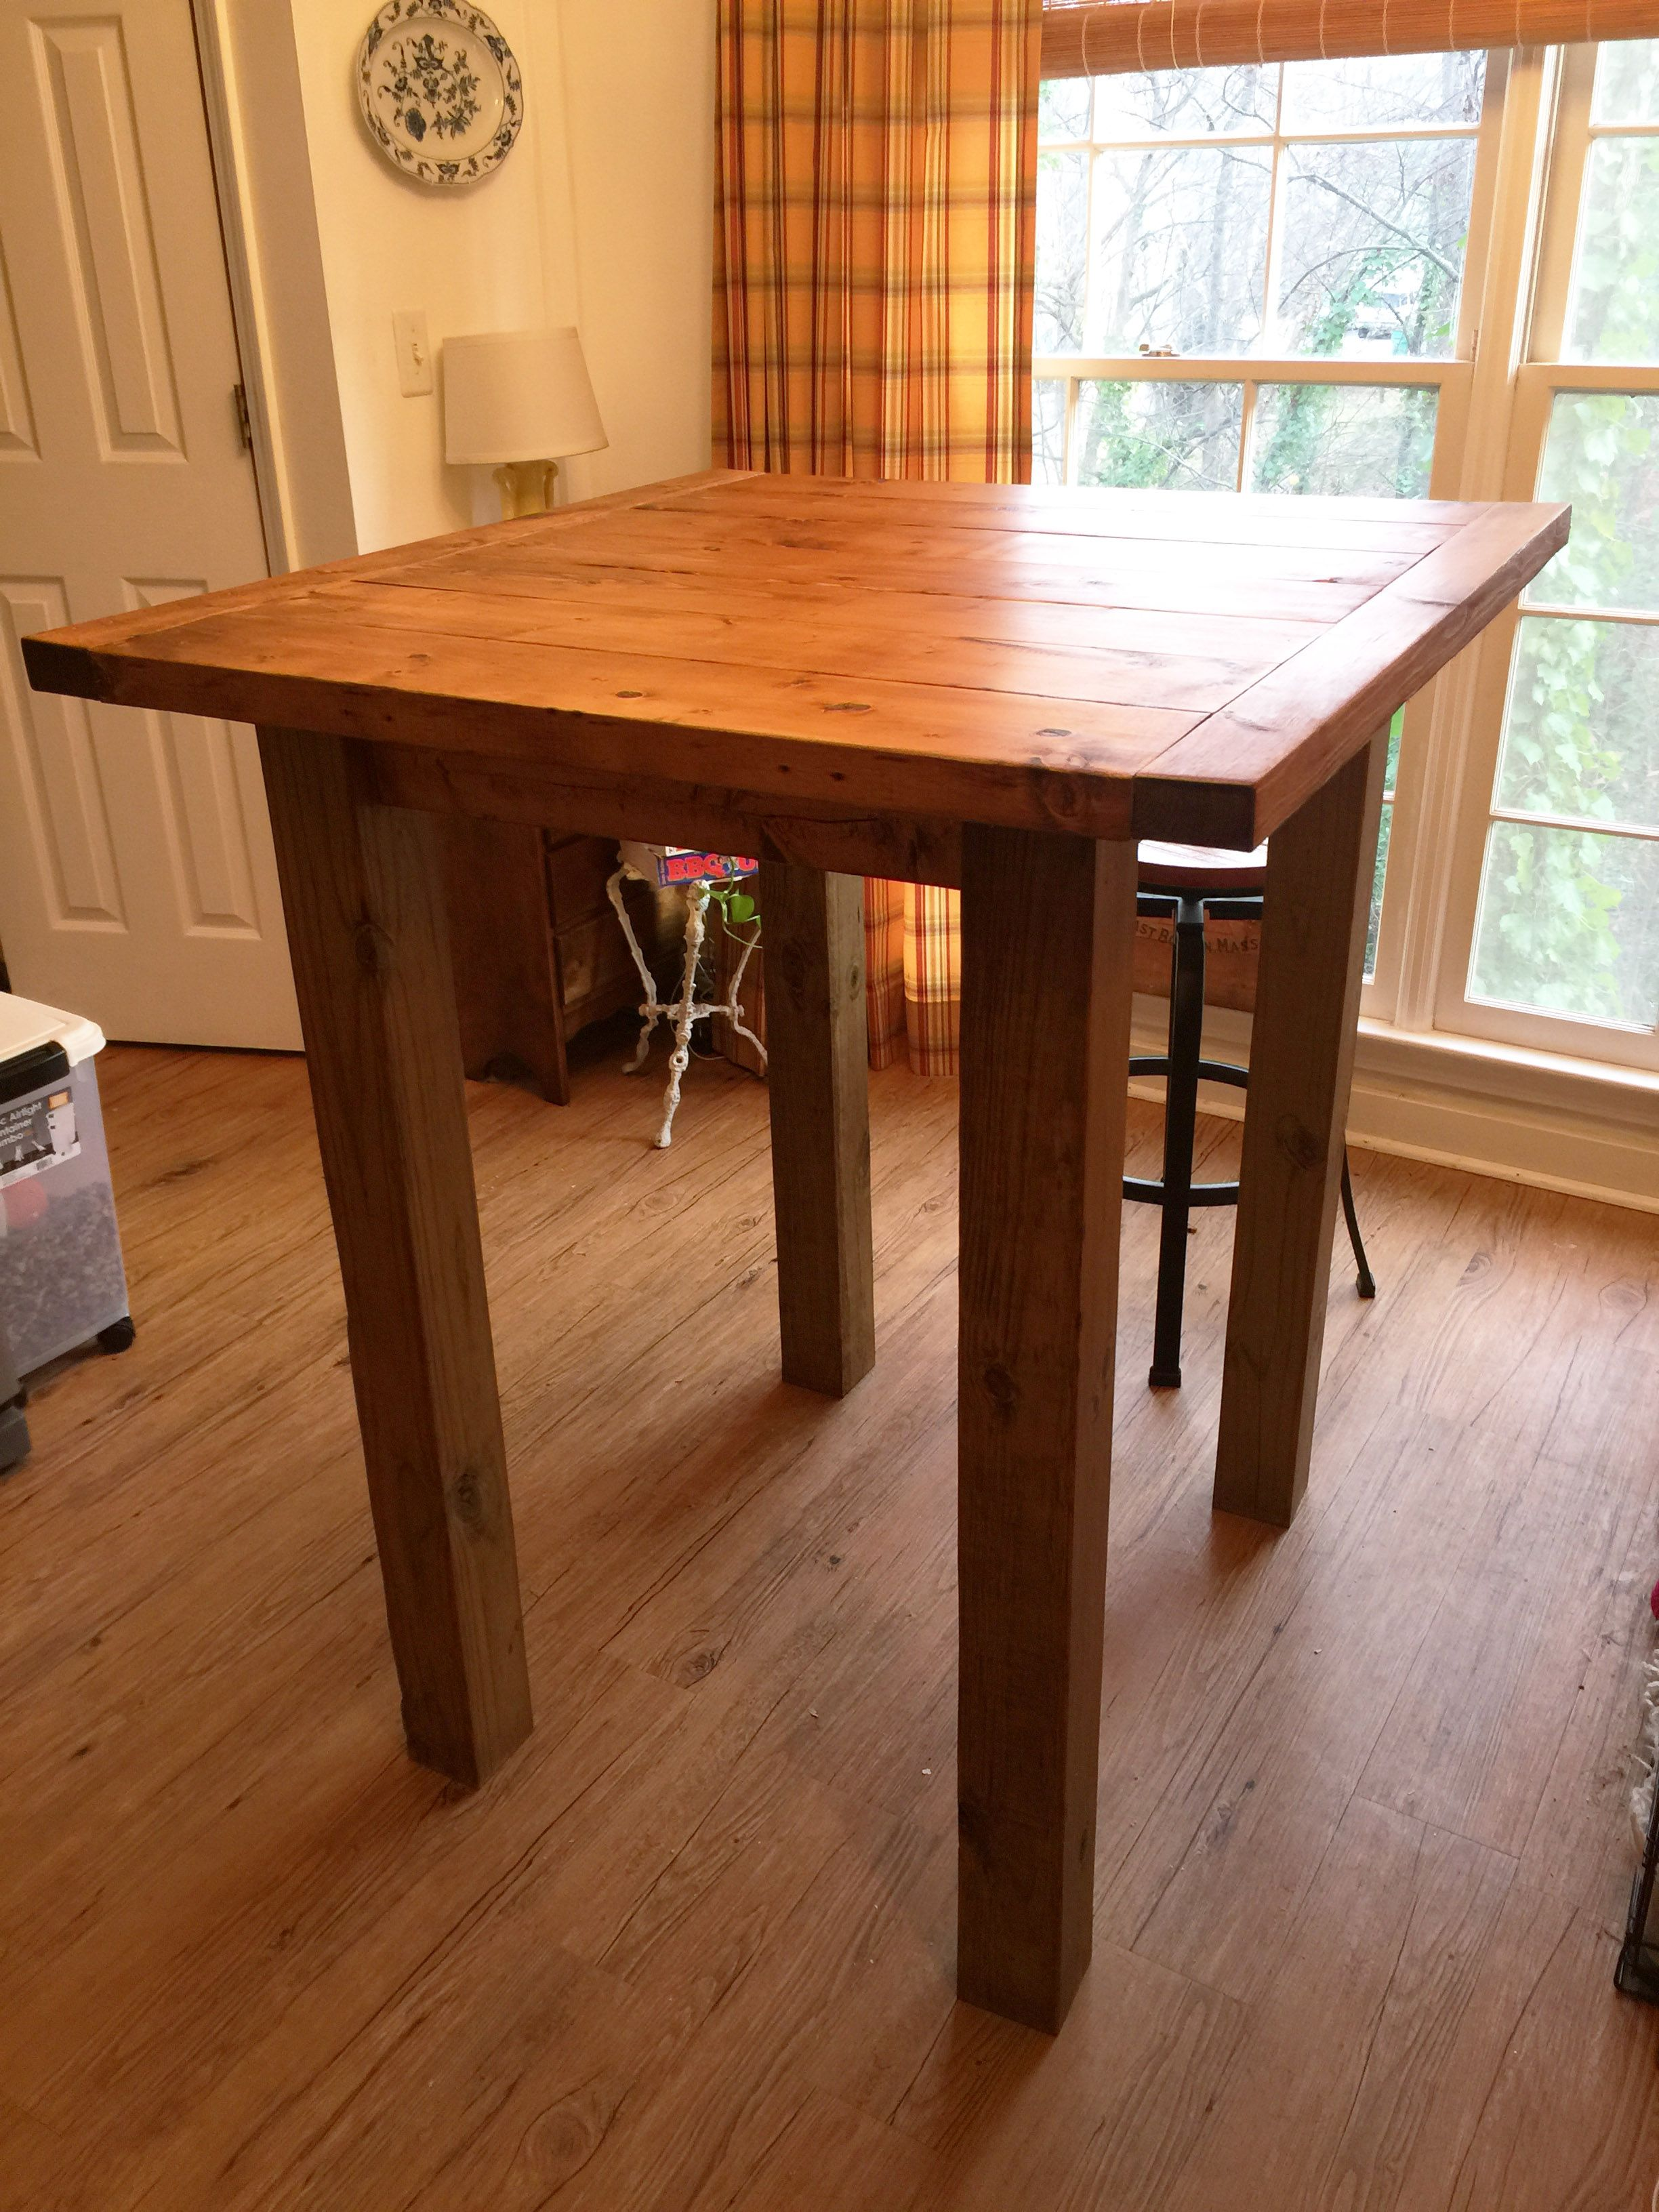 Ana White Small Pub Table Diy Projects Petite Table Cuisine